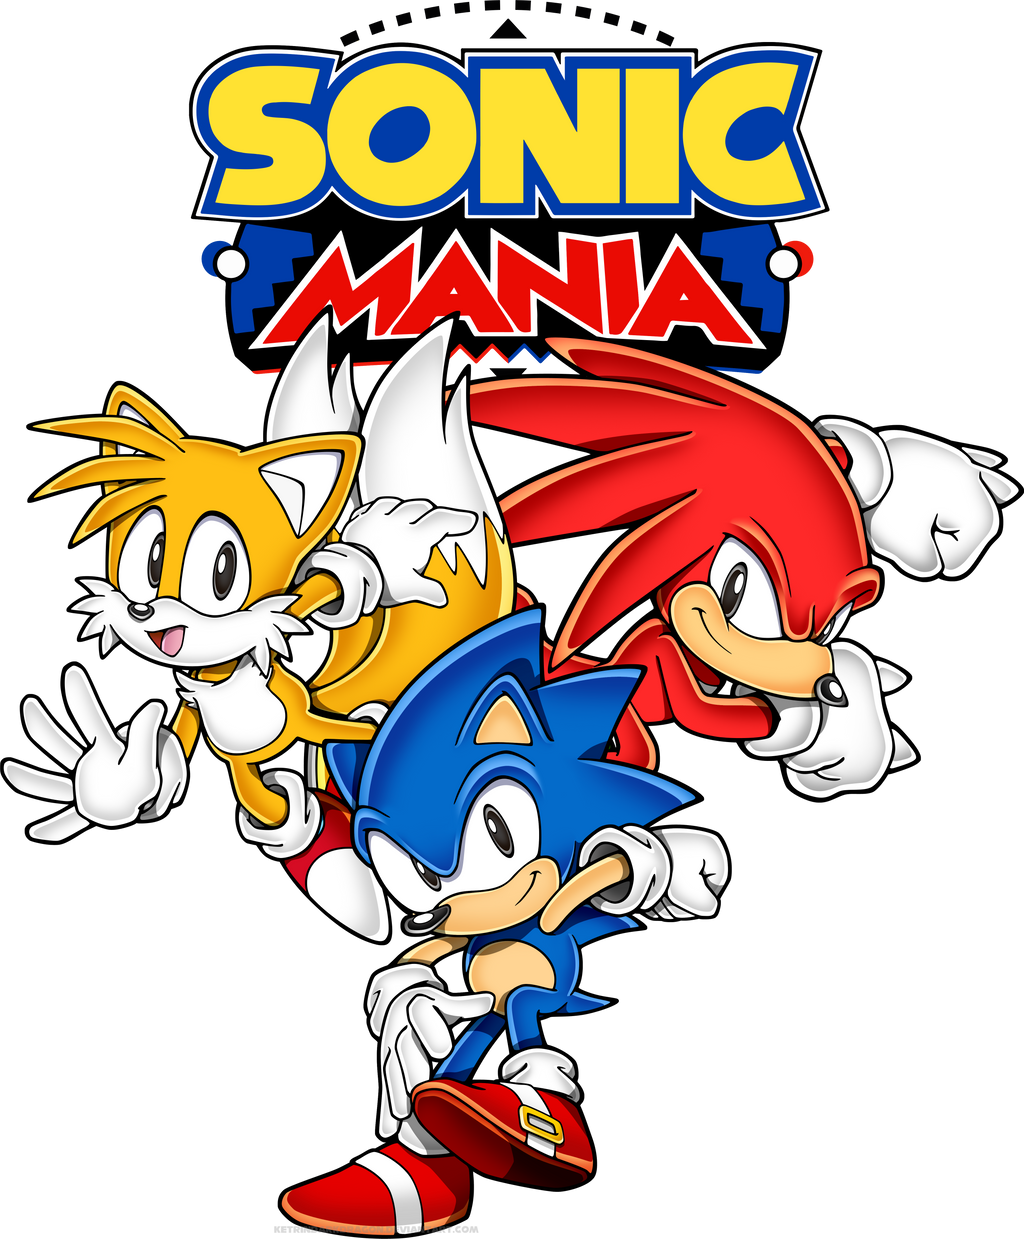 Sonic Mania By Ketrindarkdragon On Deviantart